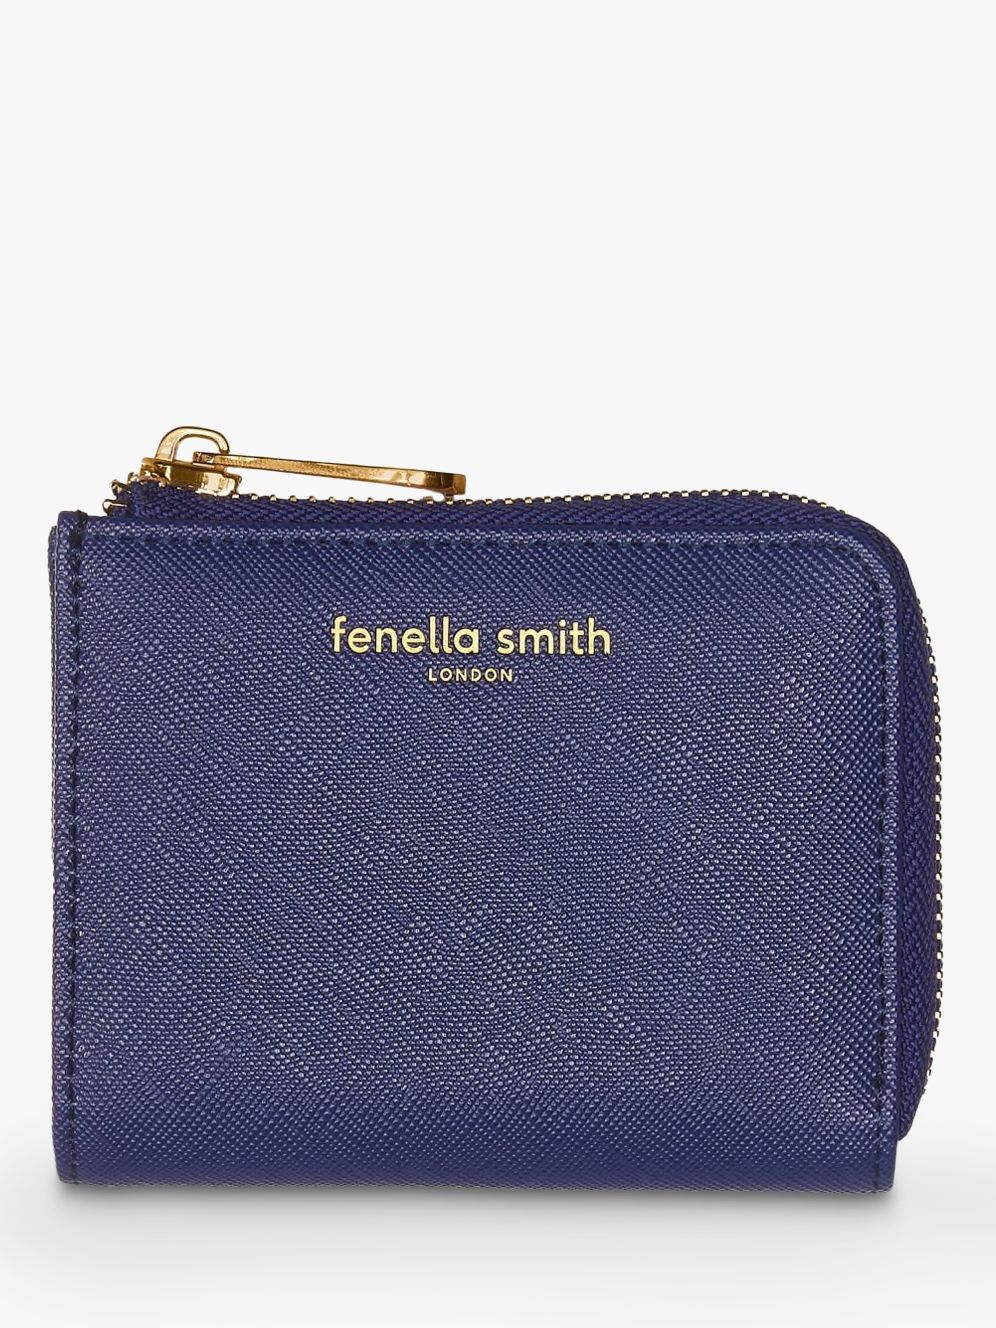 Fenella Smith Fenella Smith Lucy Coin Purse